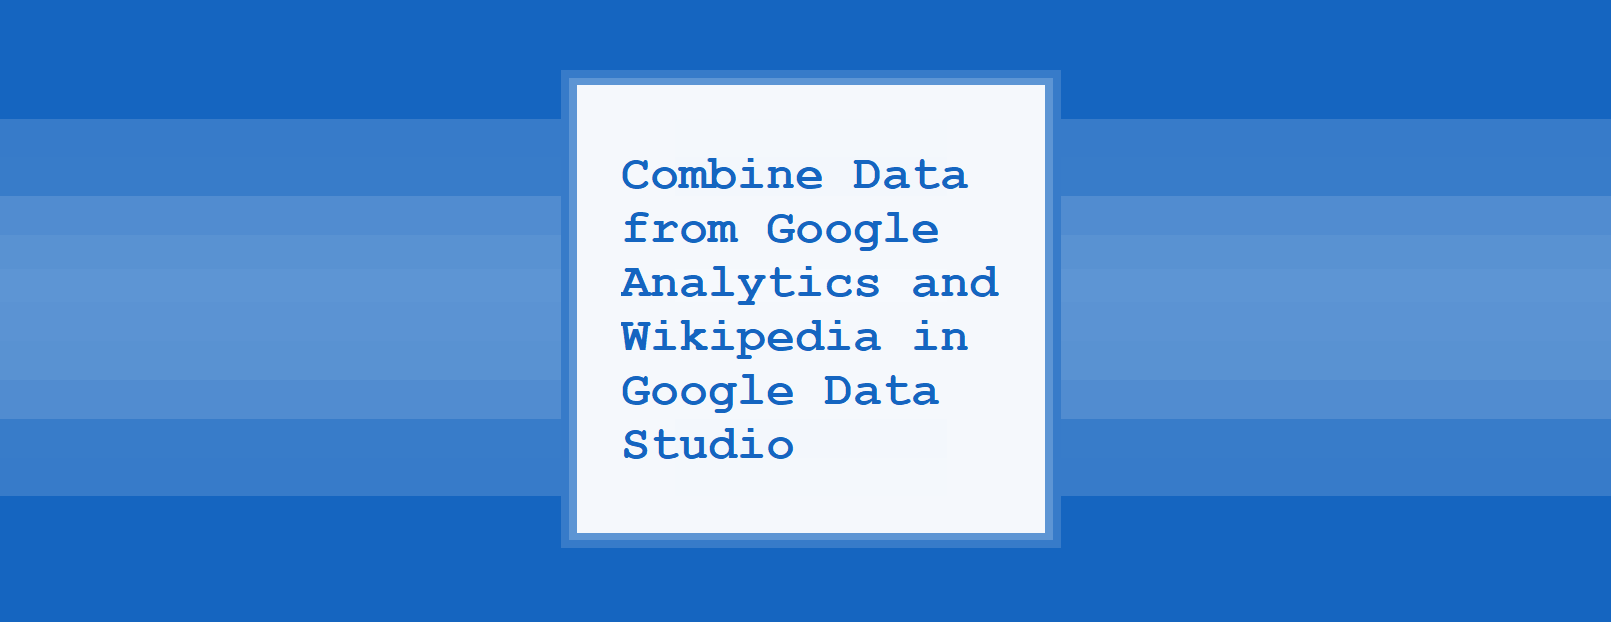 Combine Data from Google Analytics and Wikipedia in Google Data Studio